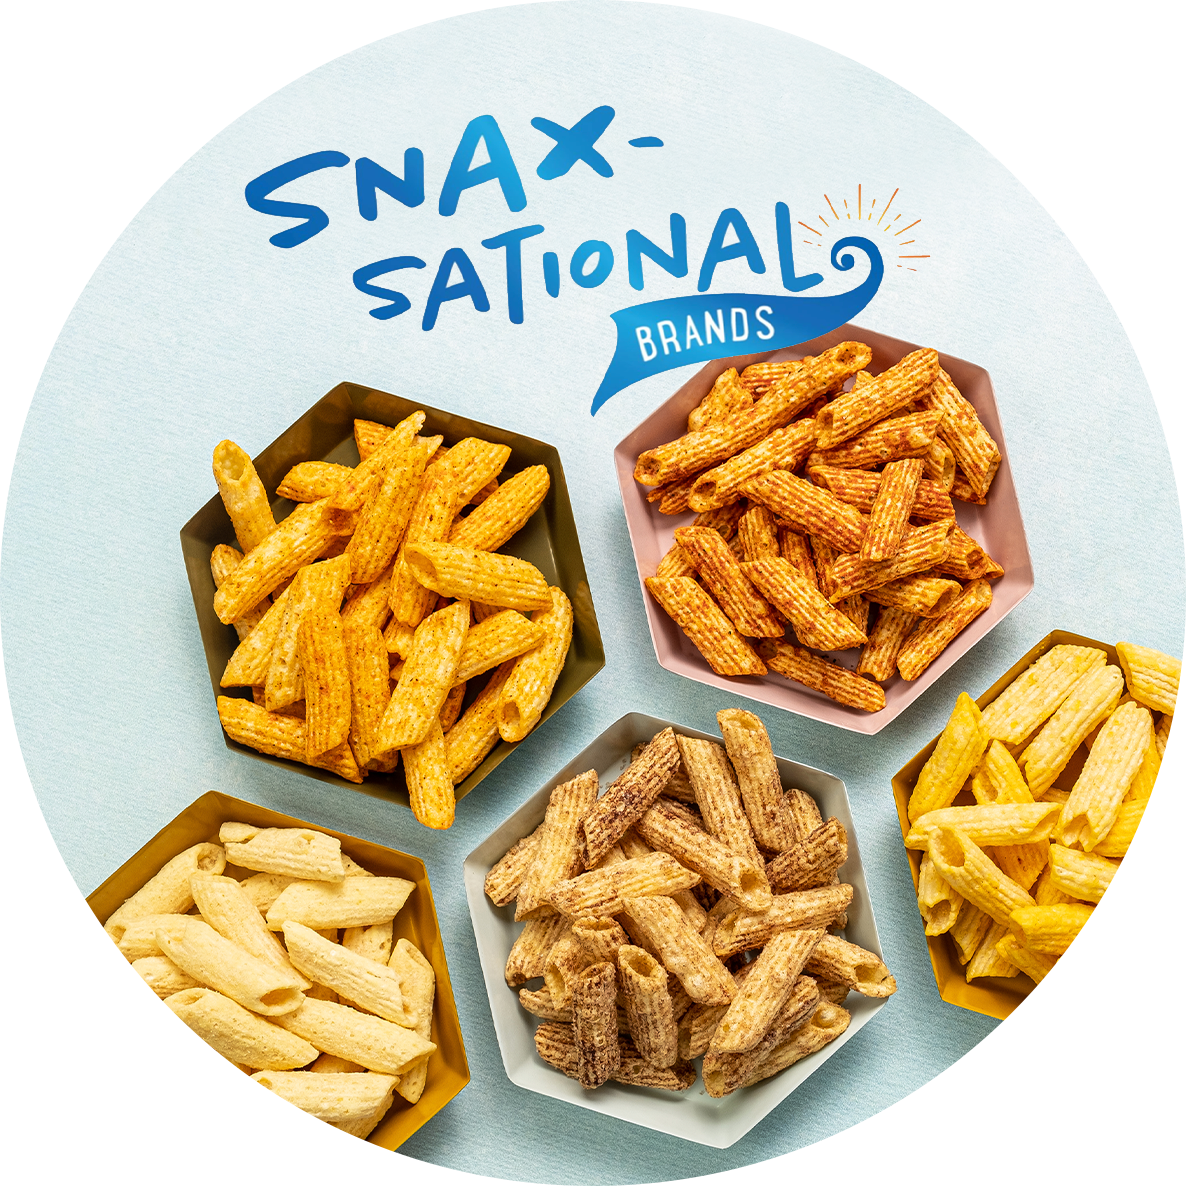 Snaxational Brands